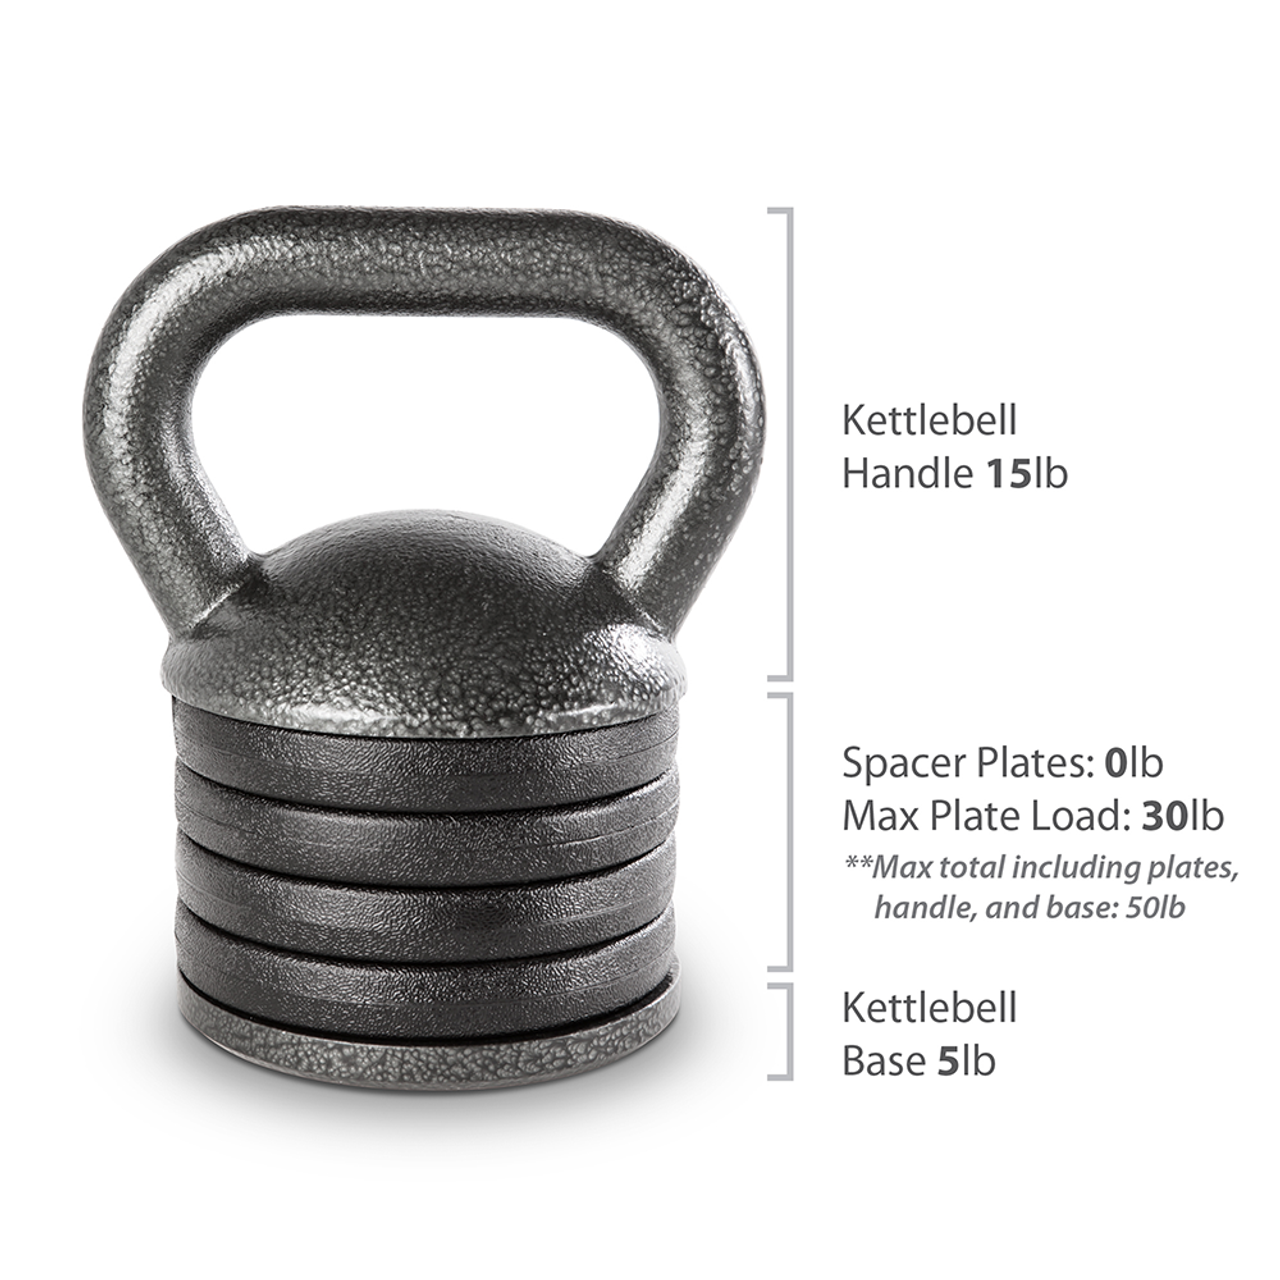 The Apex Adjustable Kettlebell includes 20 lbs of weight and spacer plates that can be replaced with weight plates